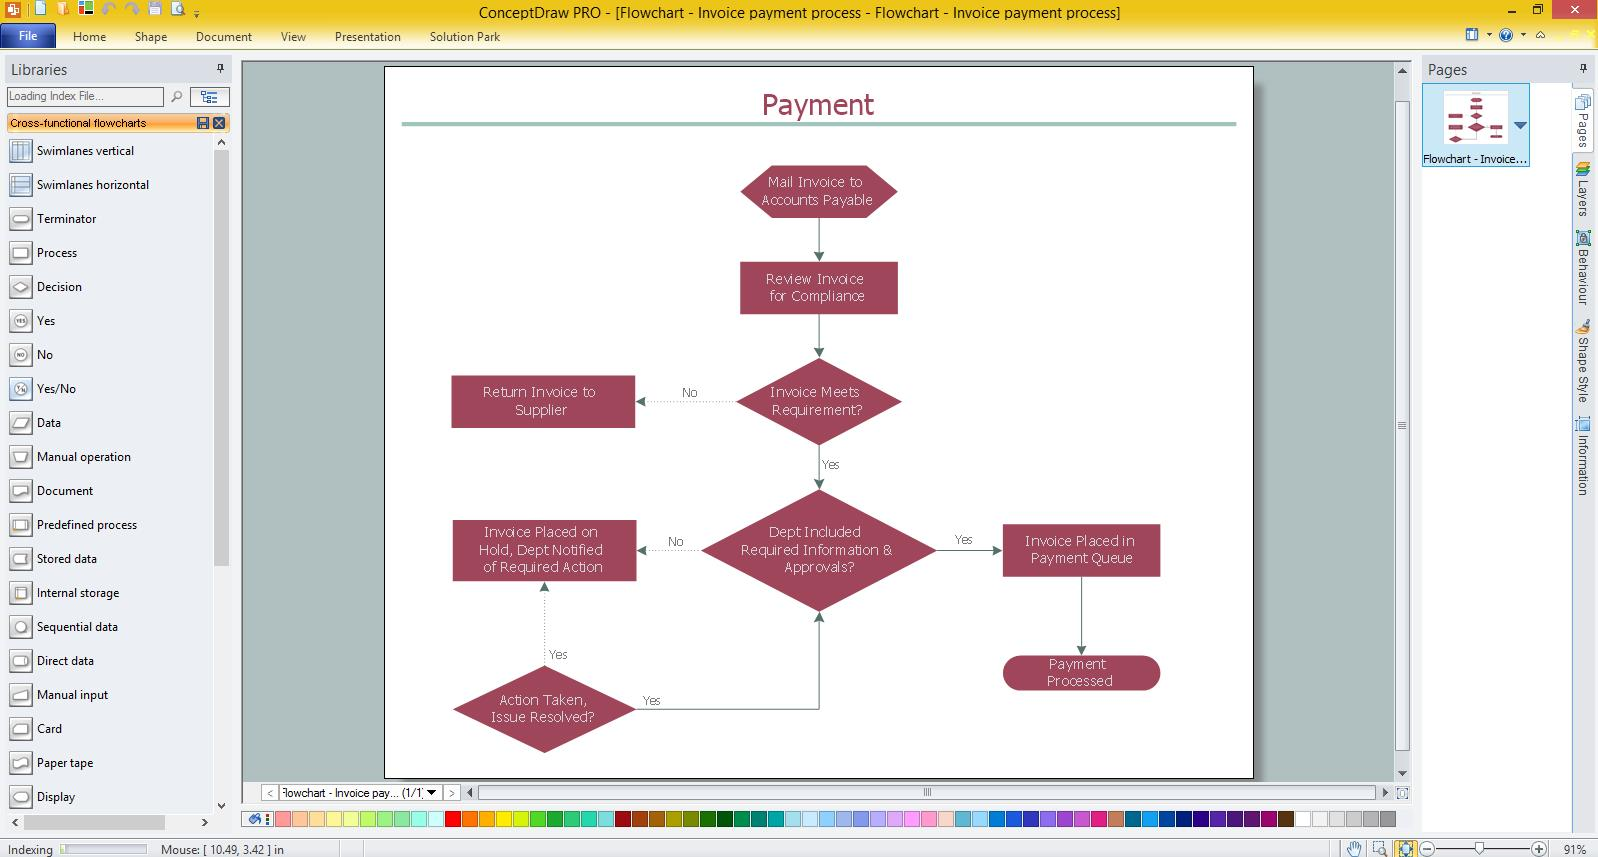 Flowchart for Payment